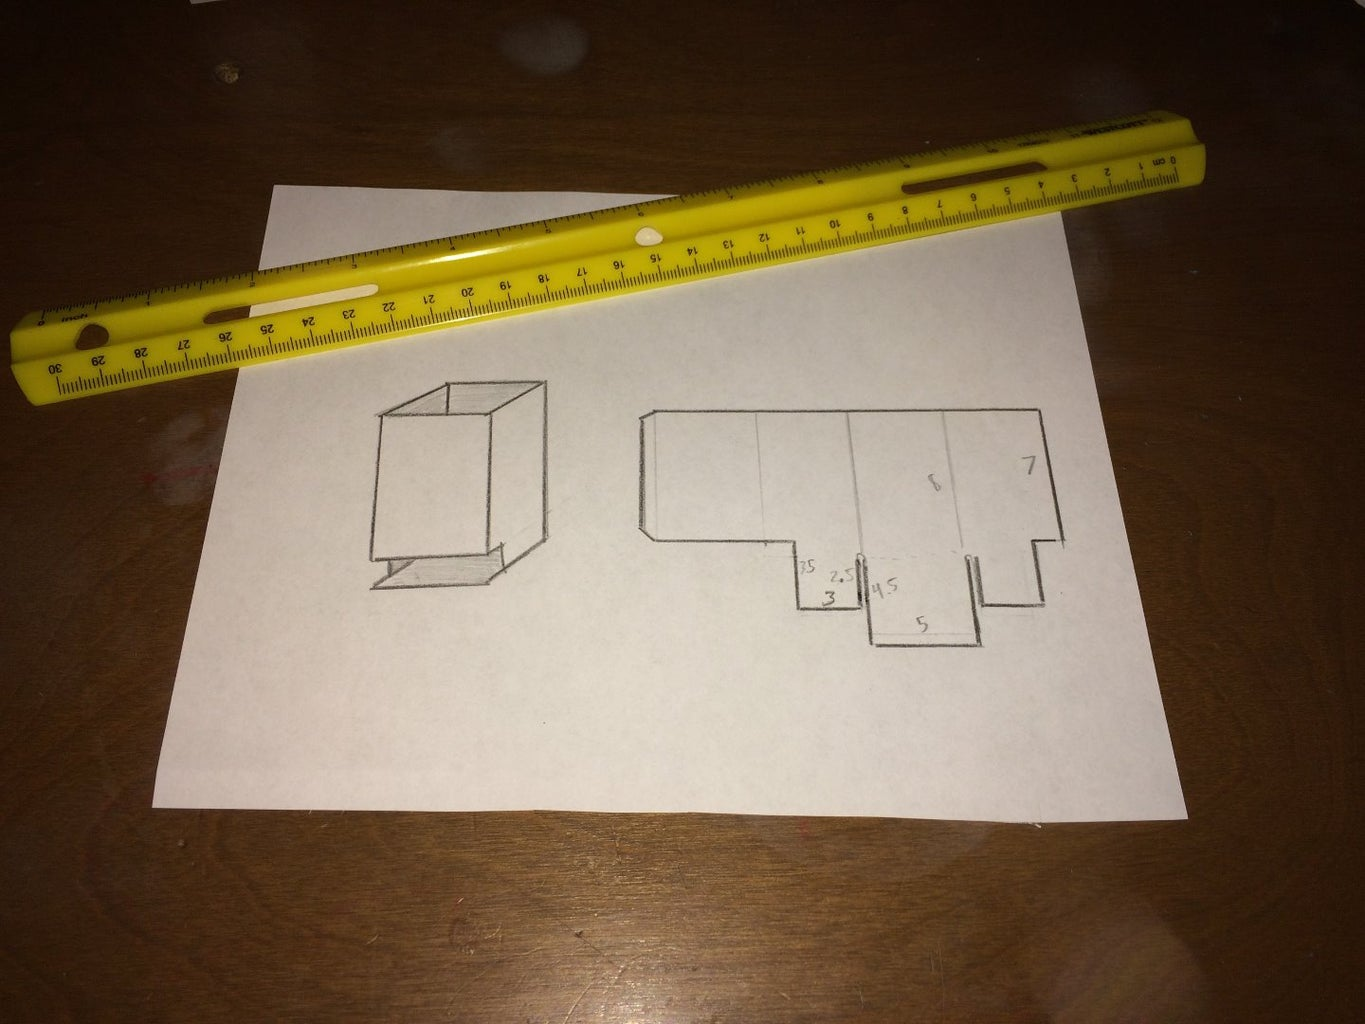 Design (Warning, Math May Be Required in This Step)